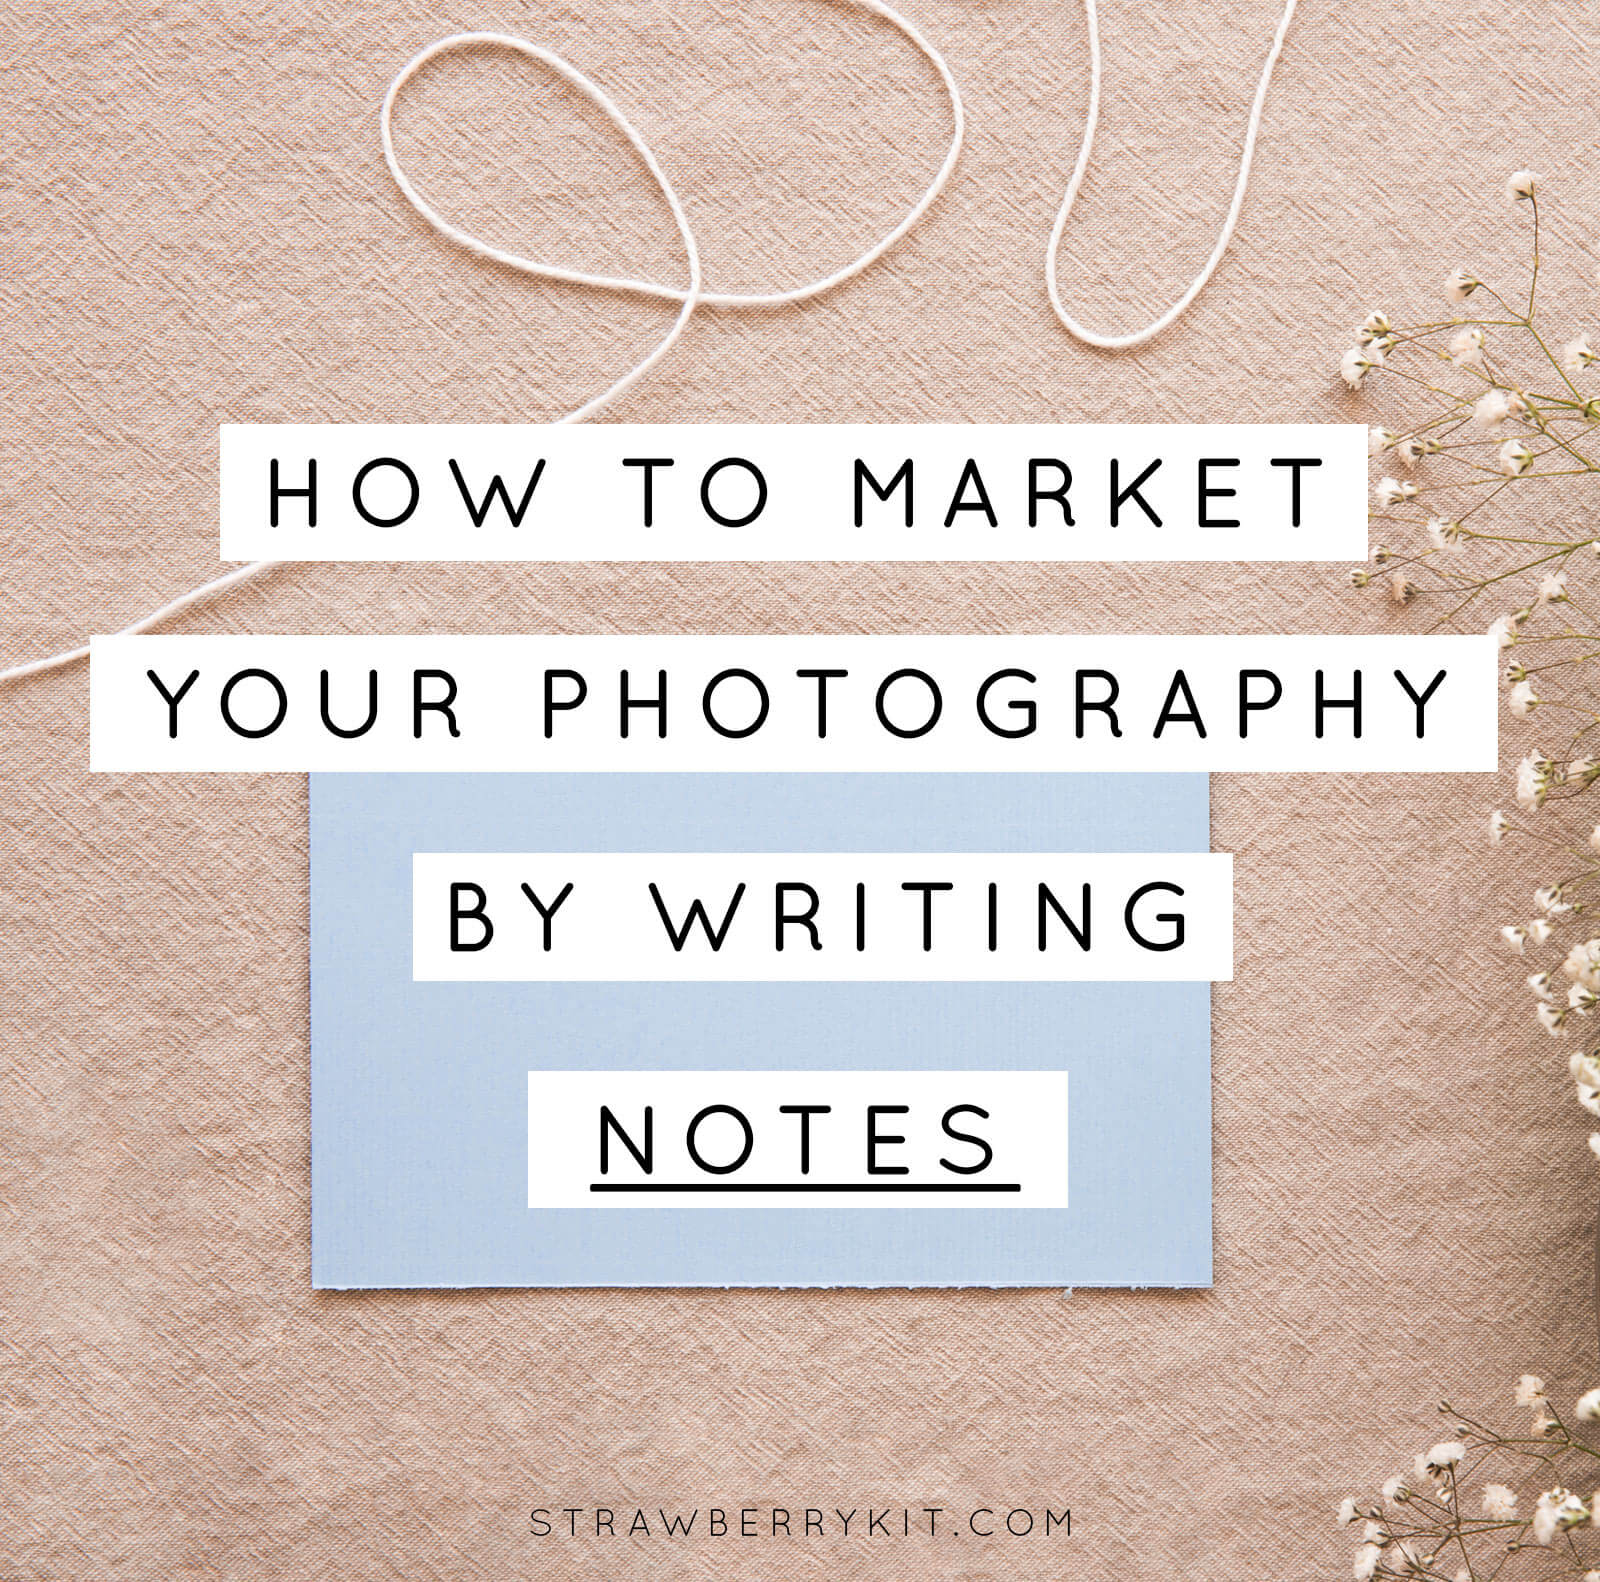 Marketing Photography by Writing Notes